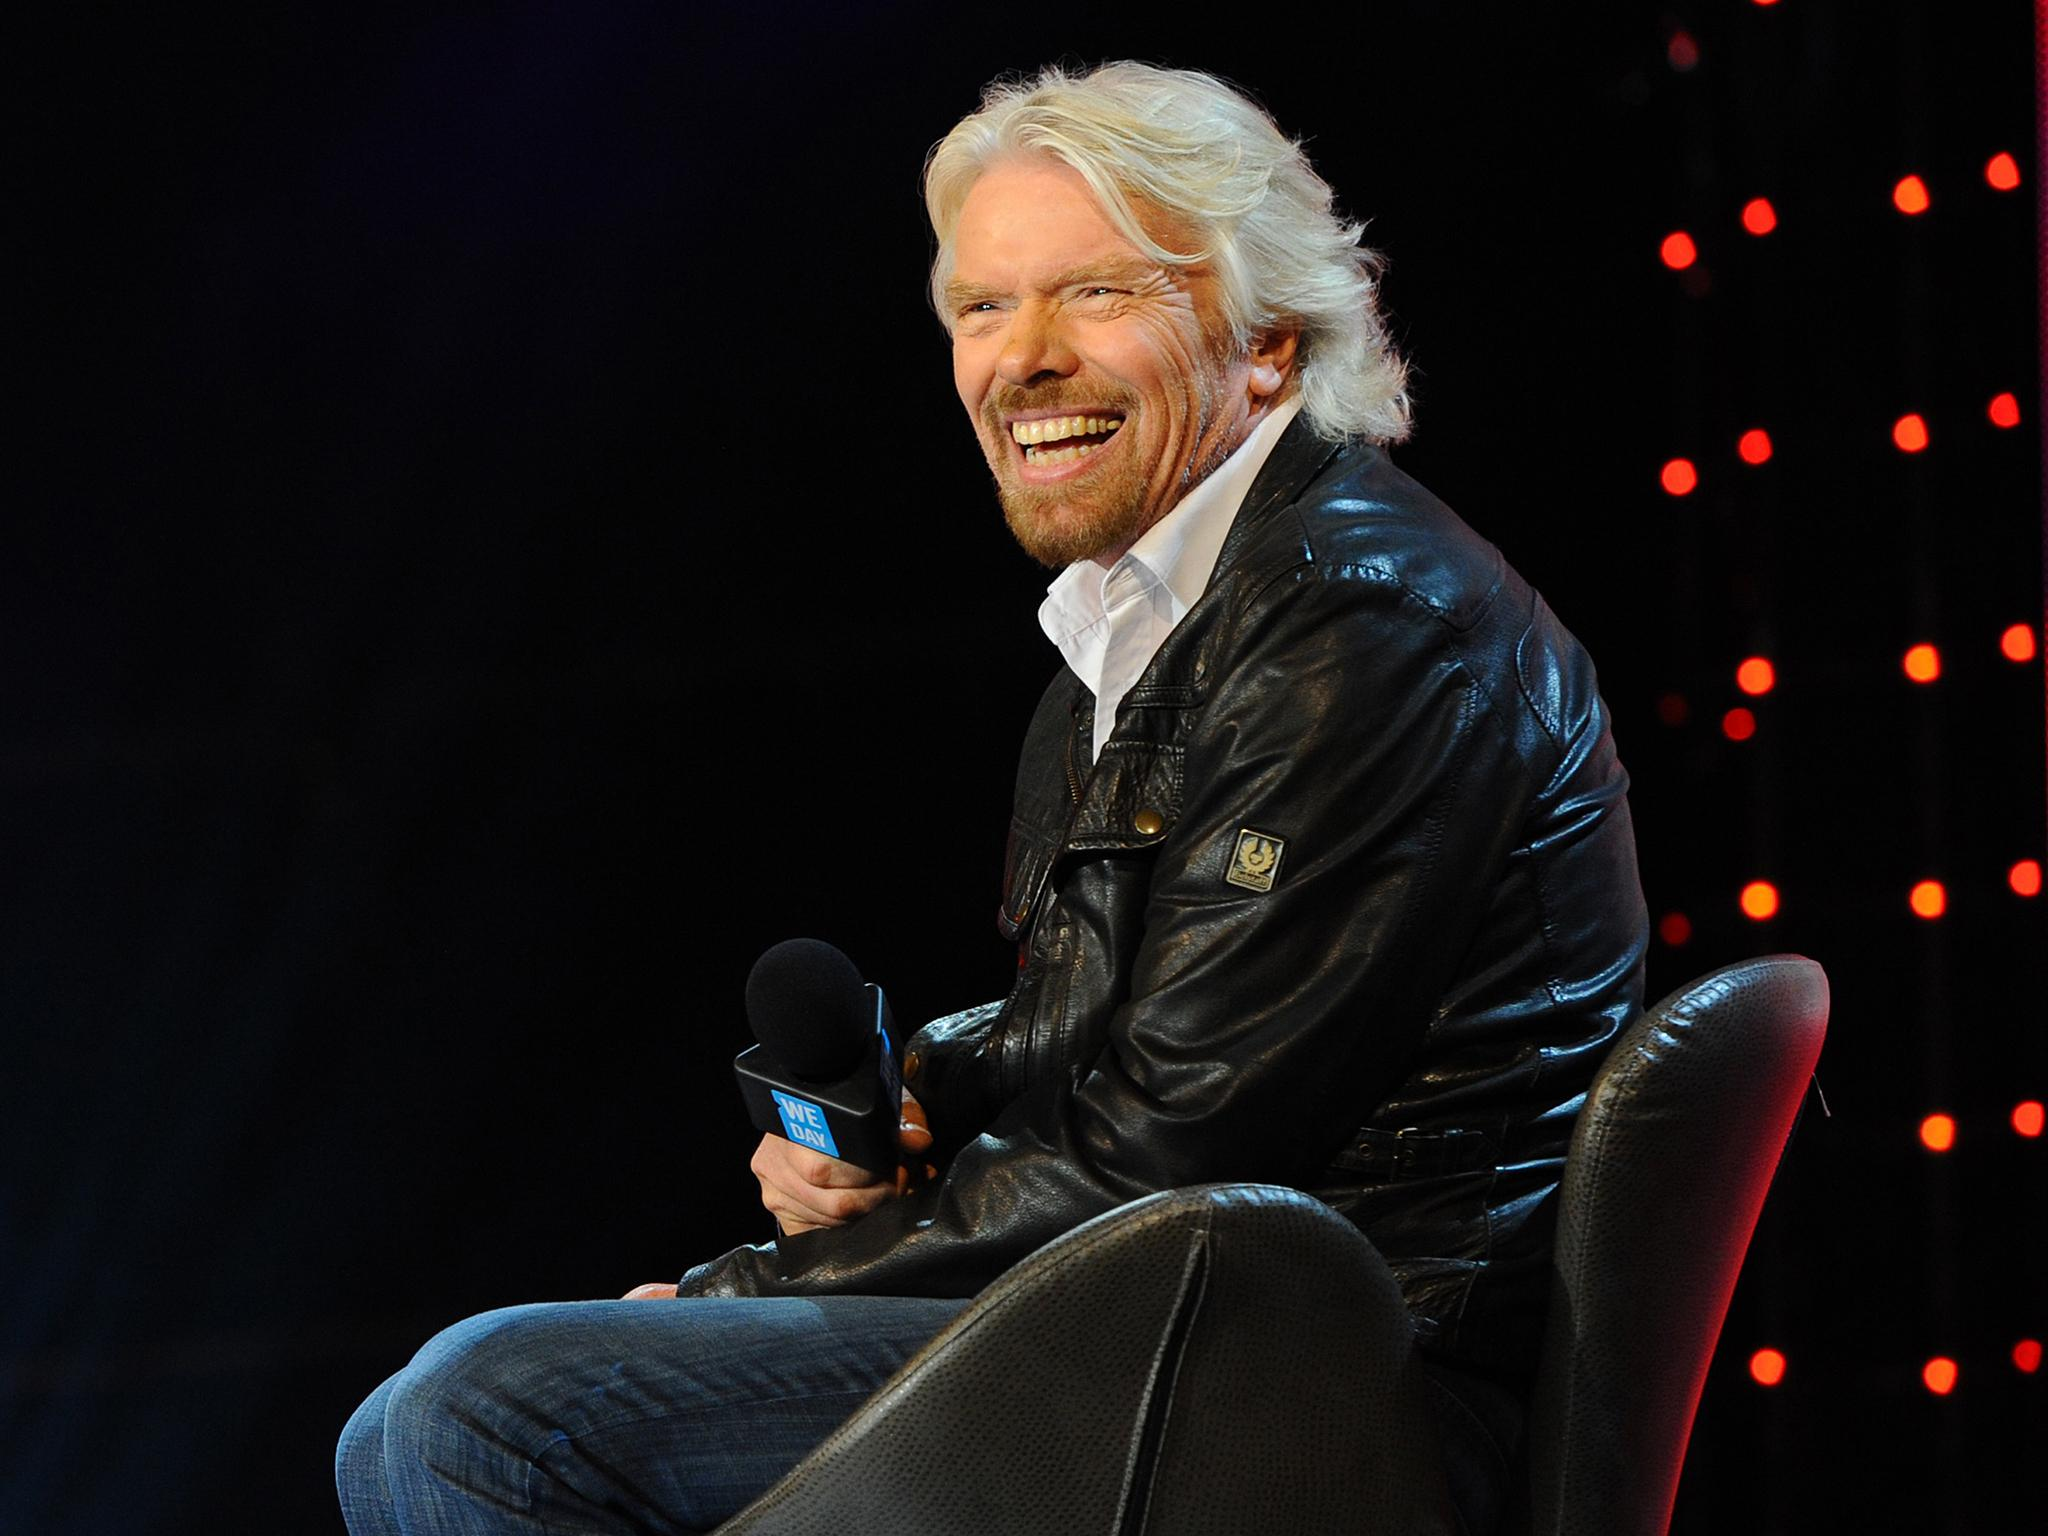 richard branson - photo #38